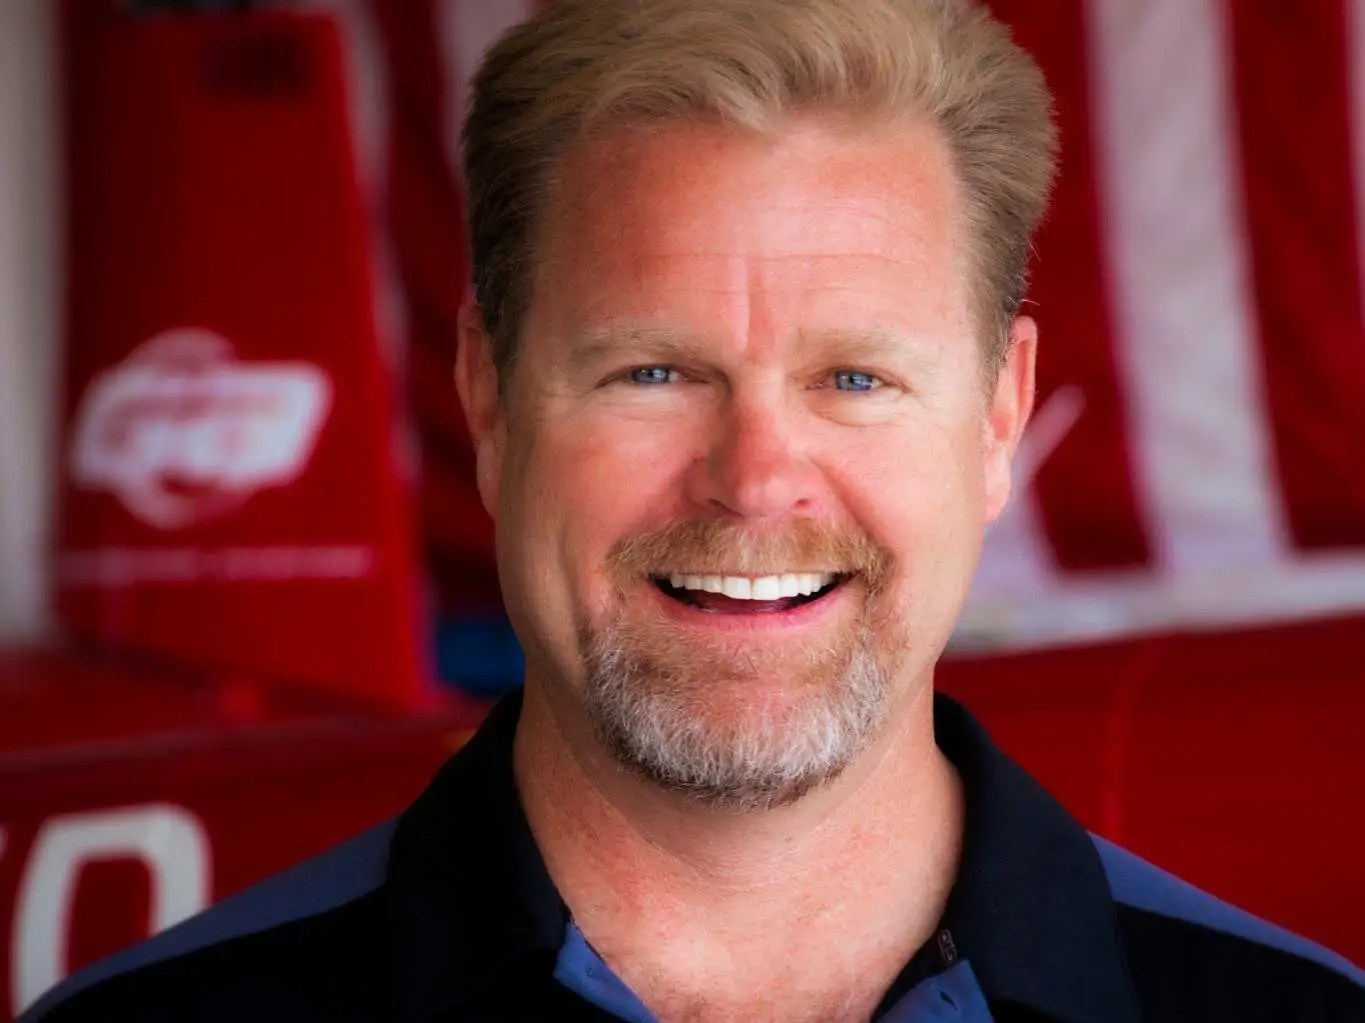 ARIZONA: John Stonecipher, President and CEO of Guidance Aviation Inc. and Small Business Person Of The Year Winner